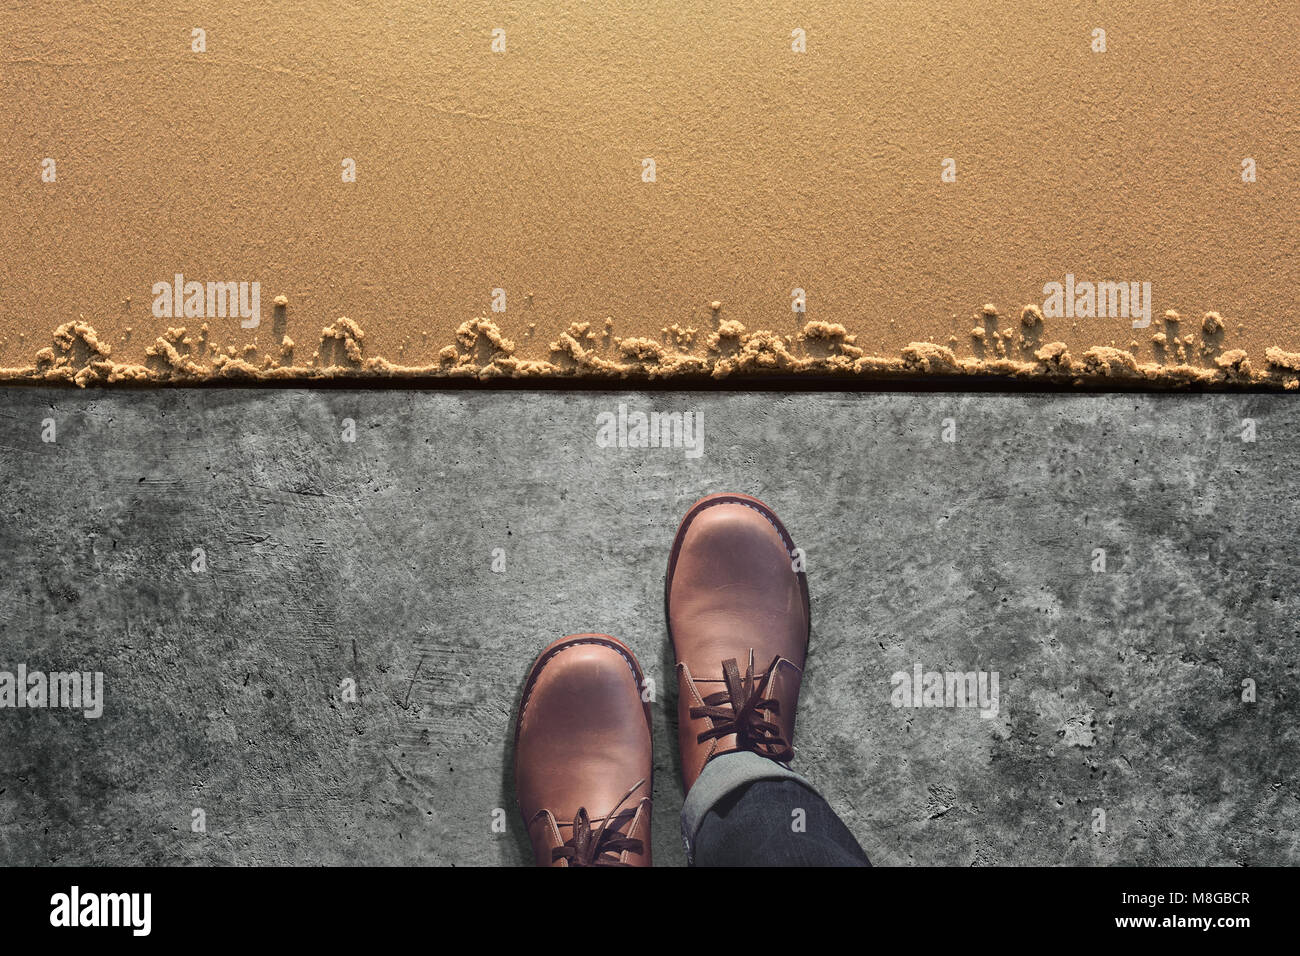 Comfort Zone Concept, Male with Leather Shoes Steps from Cement Floor into Sand Beach. Top View Stock Photo